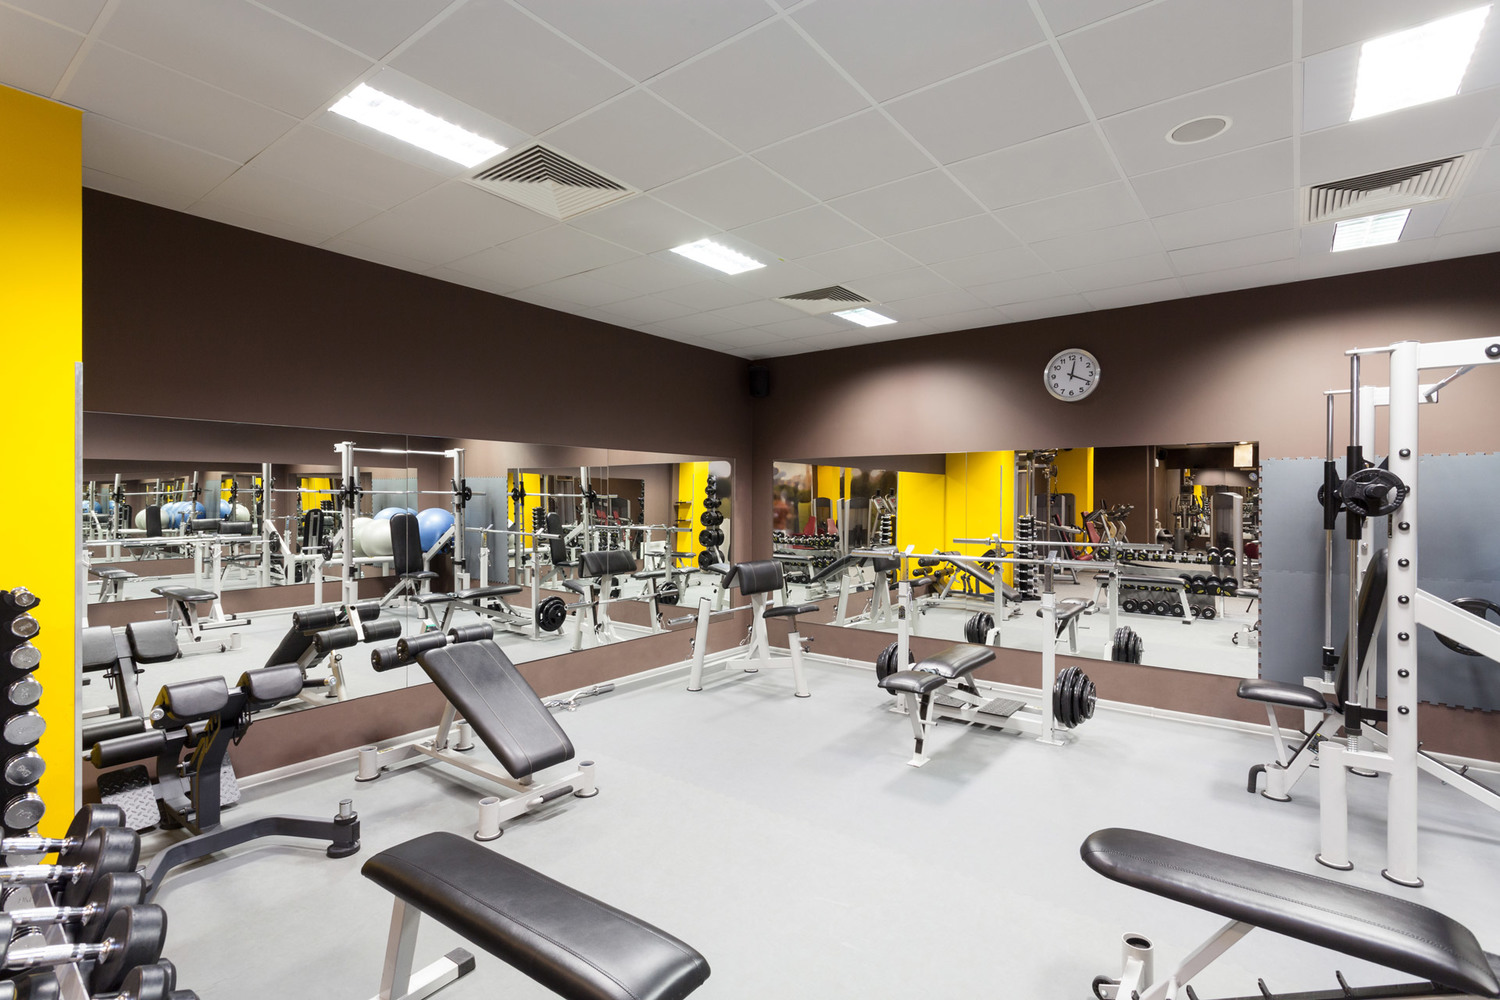 Connected Gym Equipment